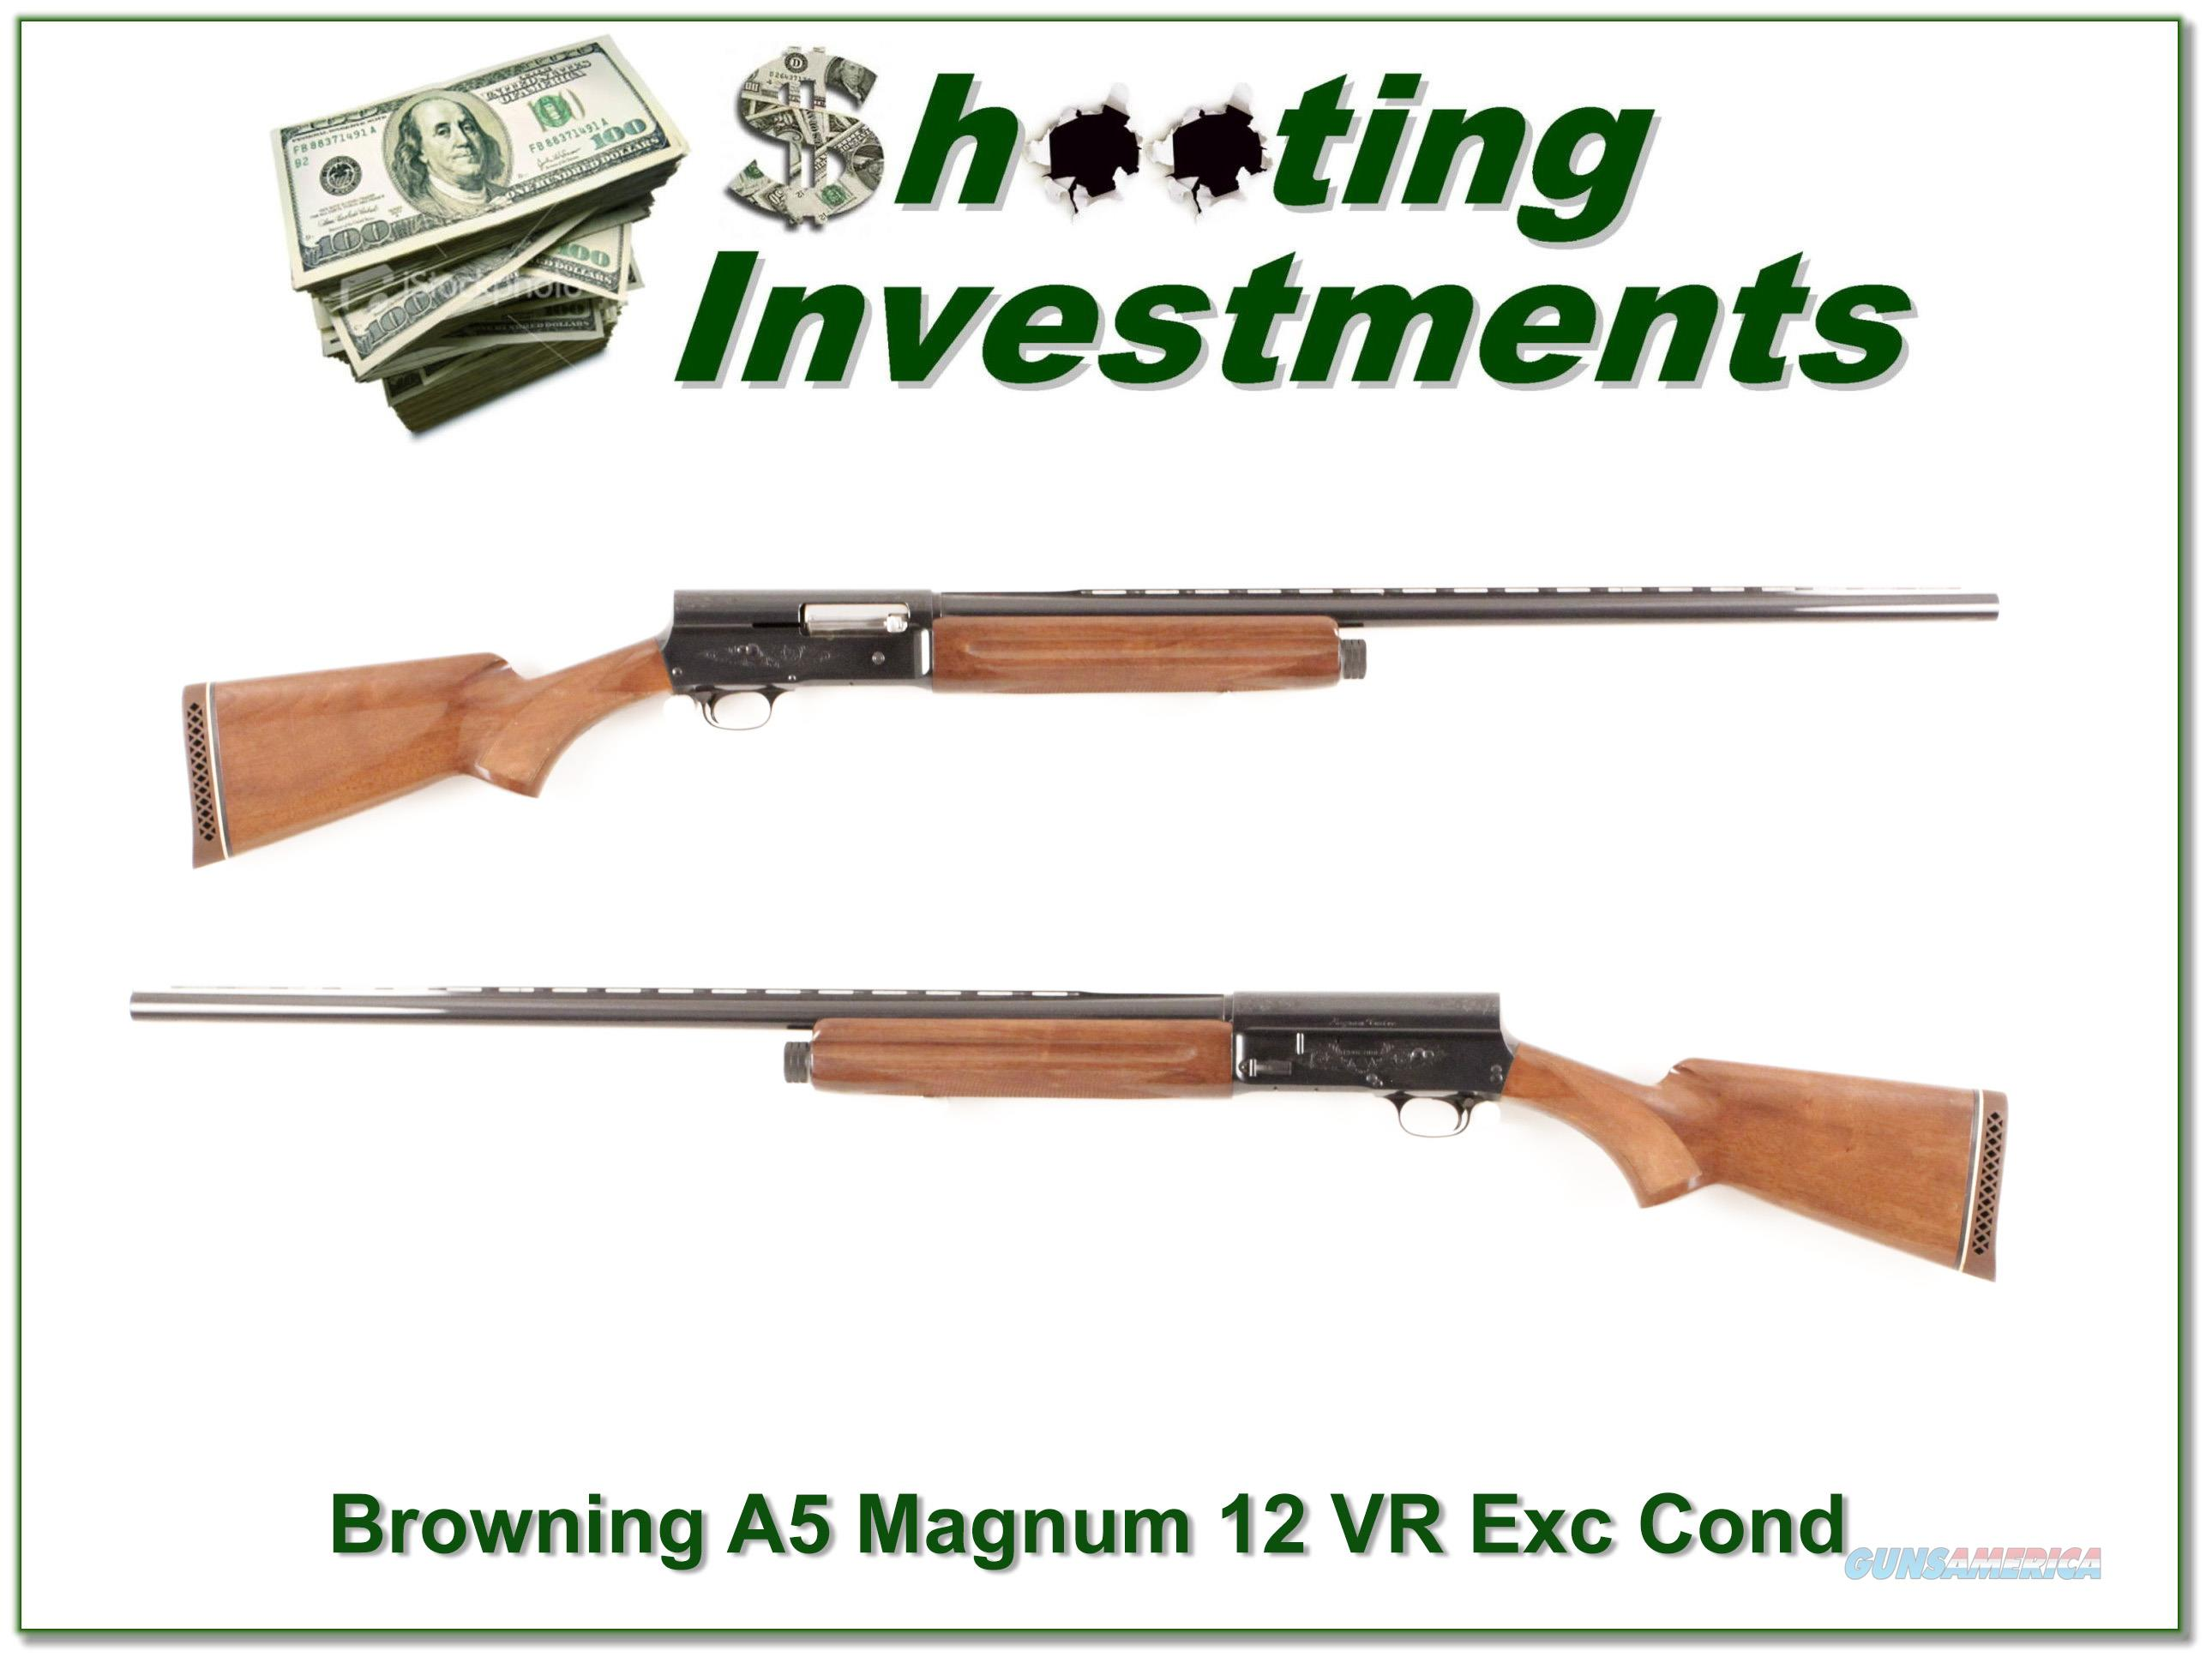 Browning A5 12 Magnum 30in VR Exc Cond!  Guns > Shotguns > Browning Shotguns > Autoloaders > Hunting